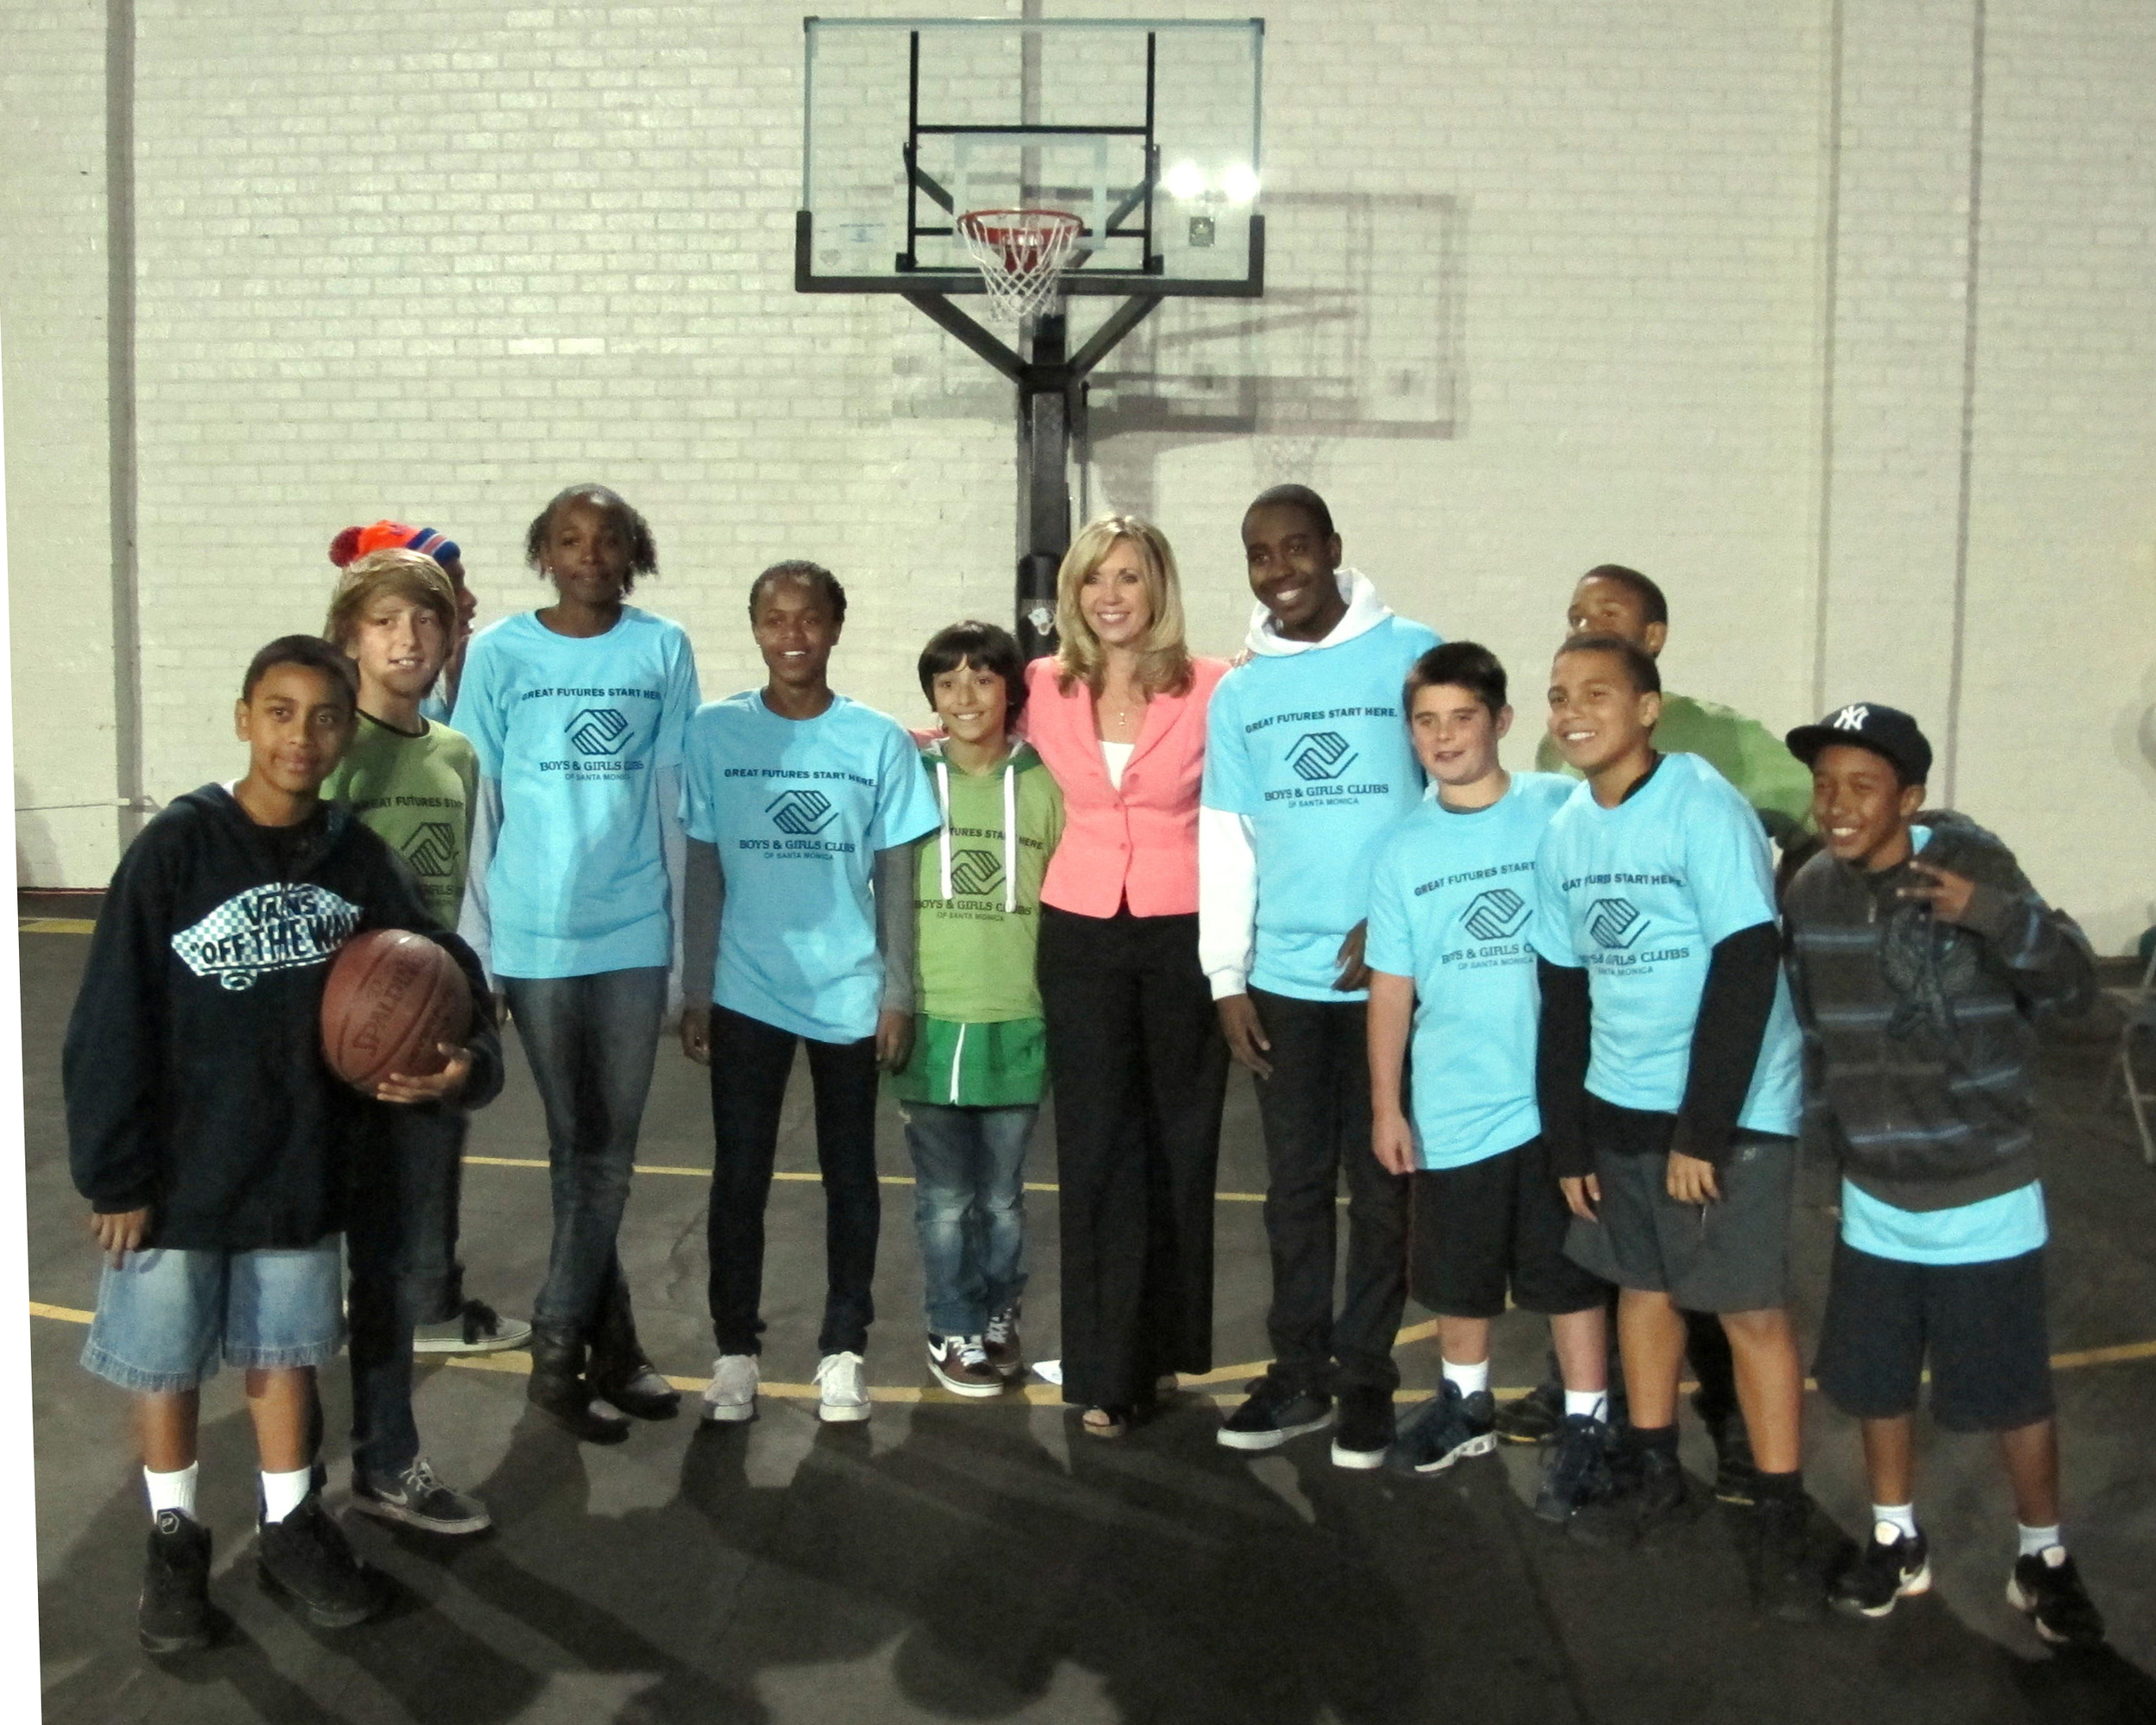 Emceeing unveiling of the new SMBGC sport court made possible by a donation from NBA star LeBron James.